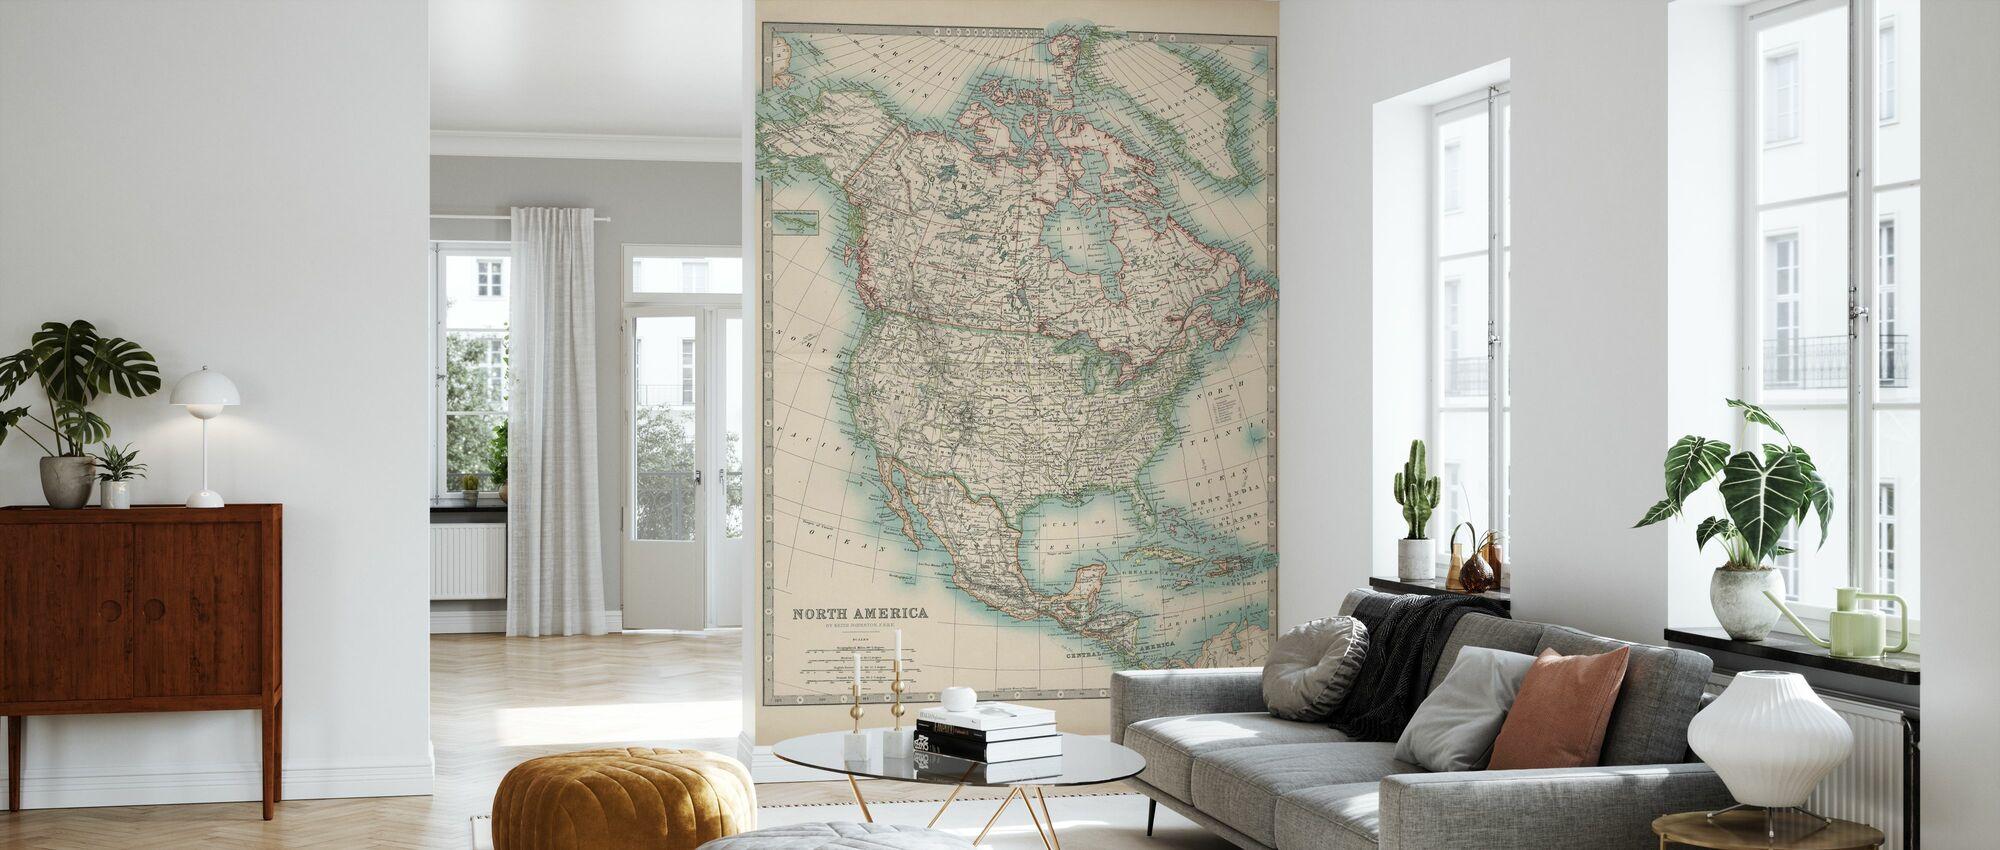 Johnstons Map of North America - Wallpaper - Living Room